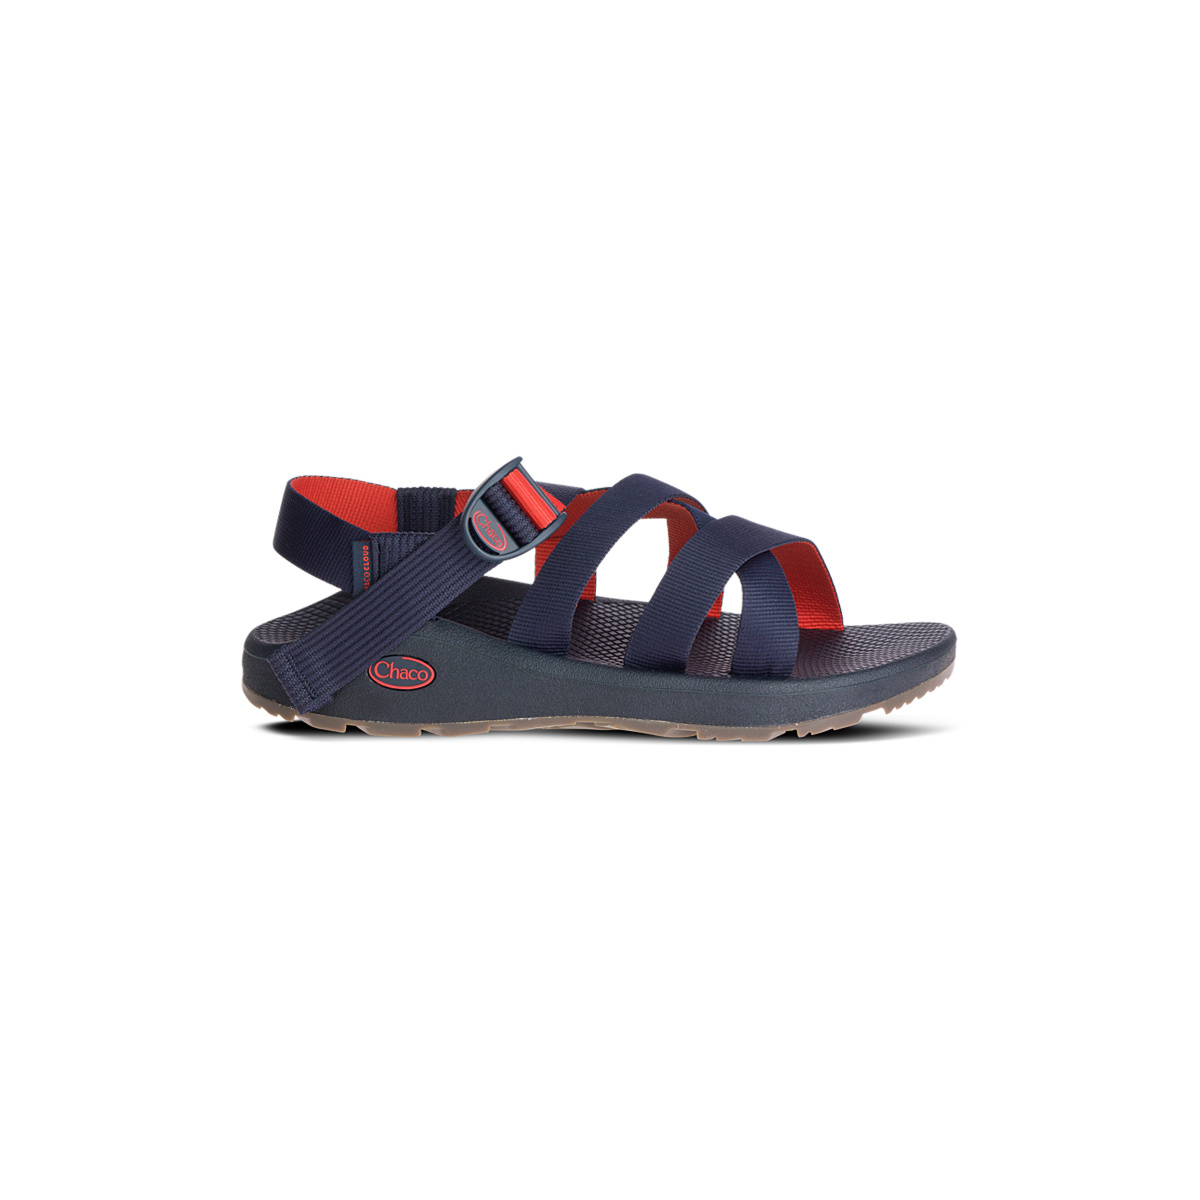 Chaco Men's Banded Z Cloud